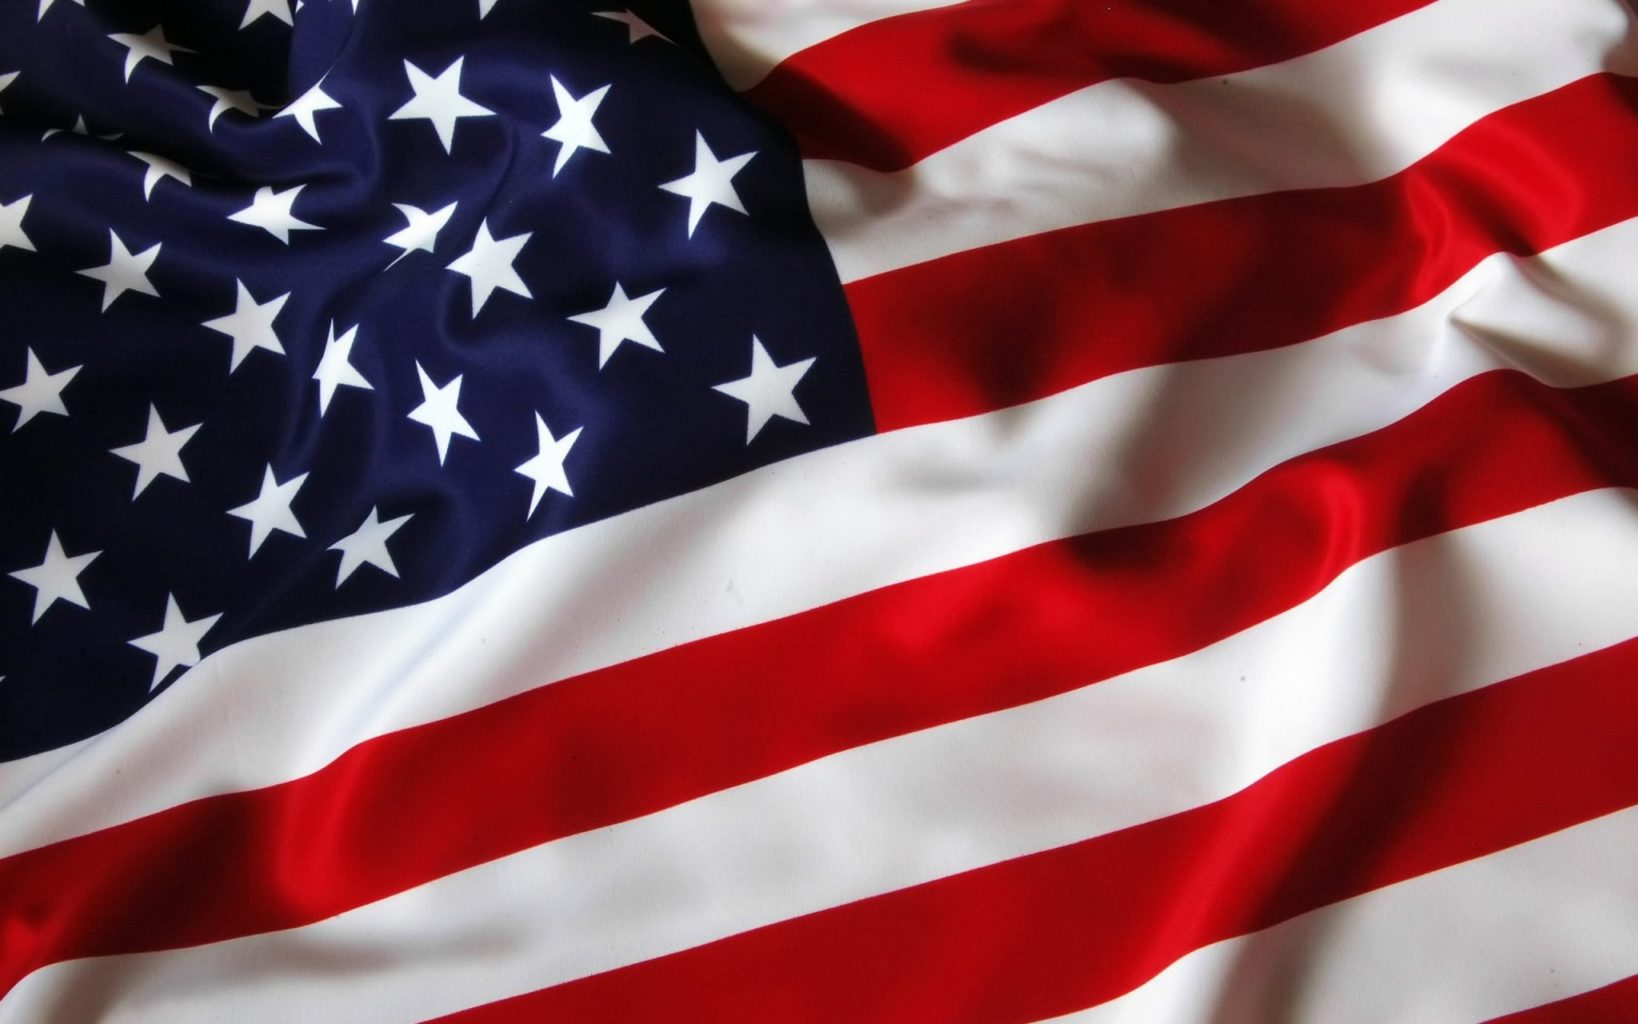 cropped-6359522916982979101945910017_american-flag-beautiful-images-hd-new-wallpapers-of-us-flag-2js7f9y1-2.jpg